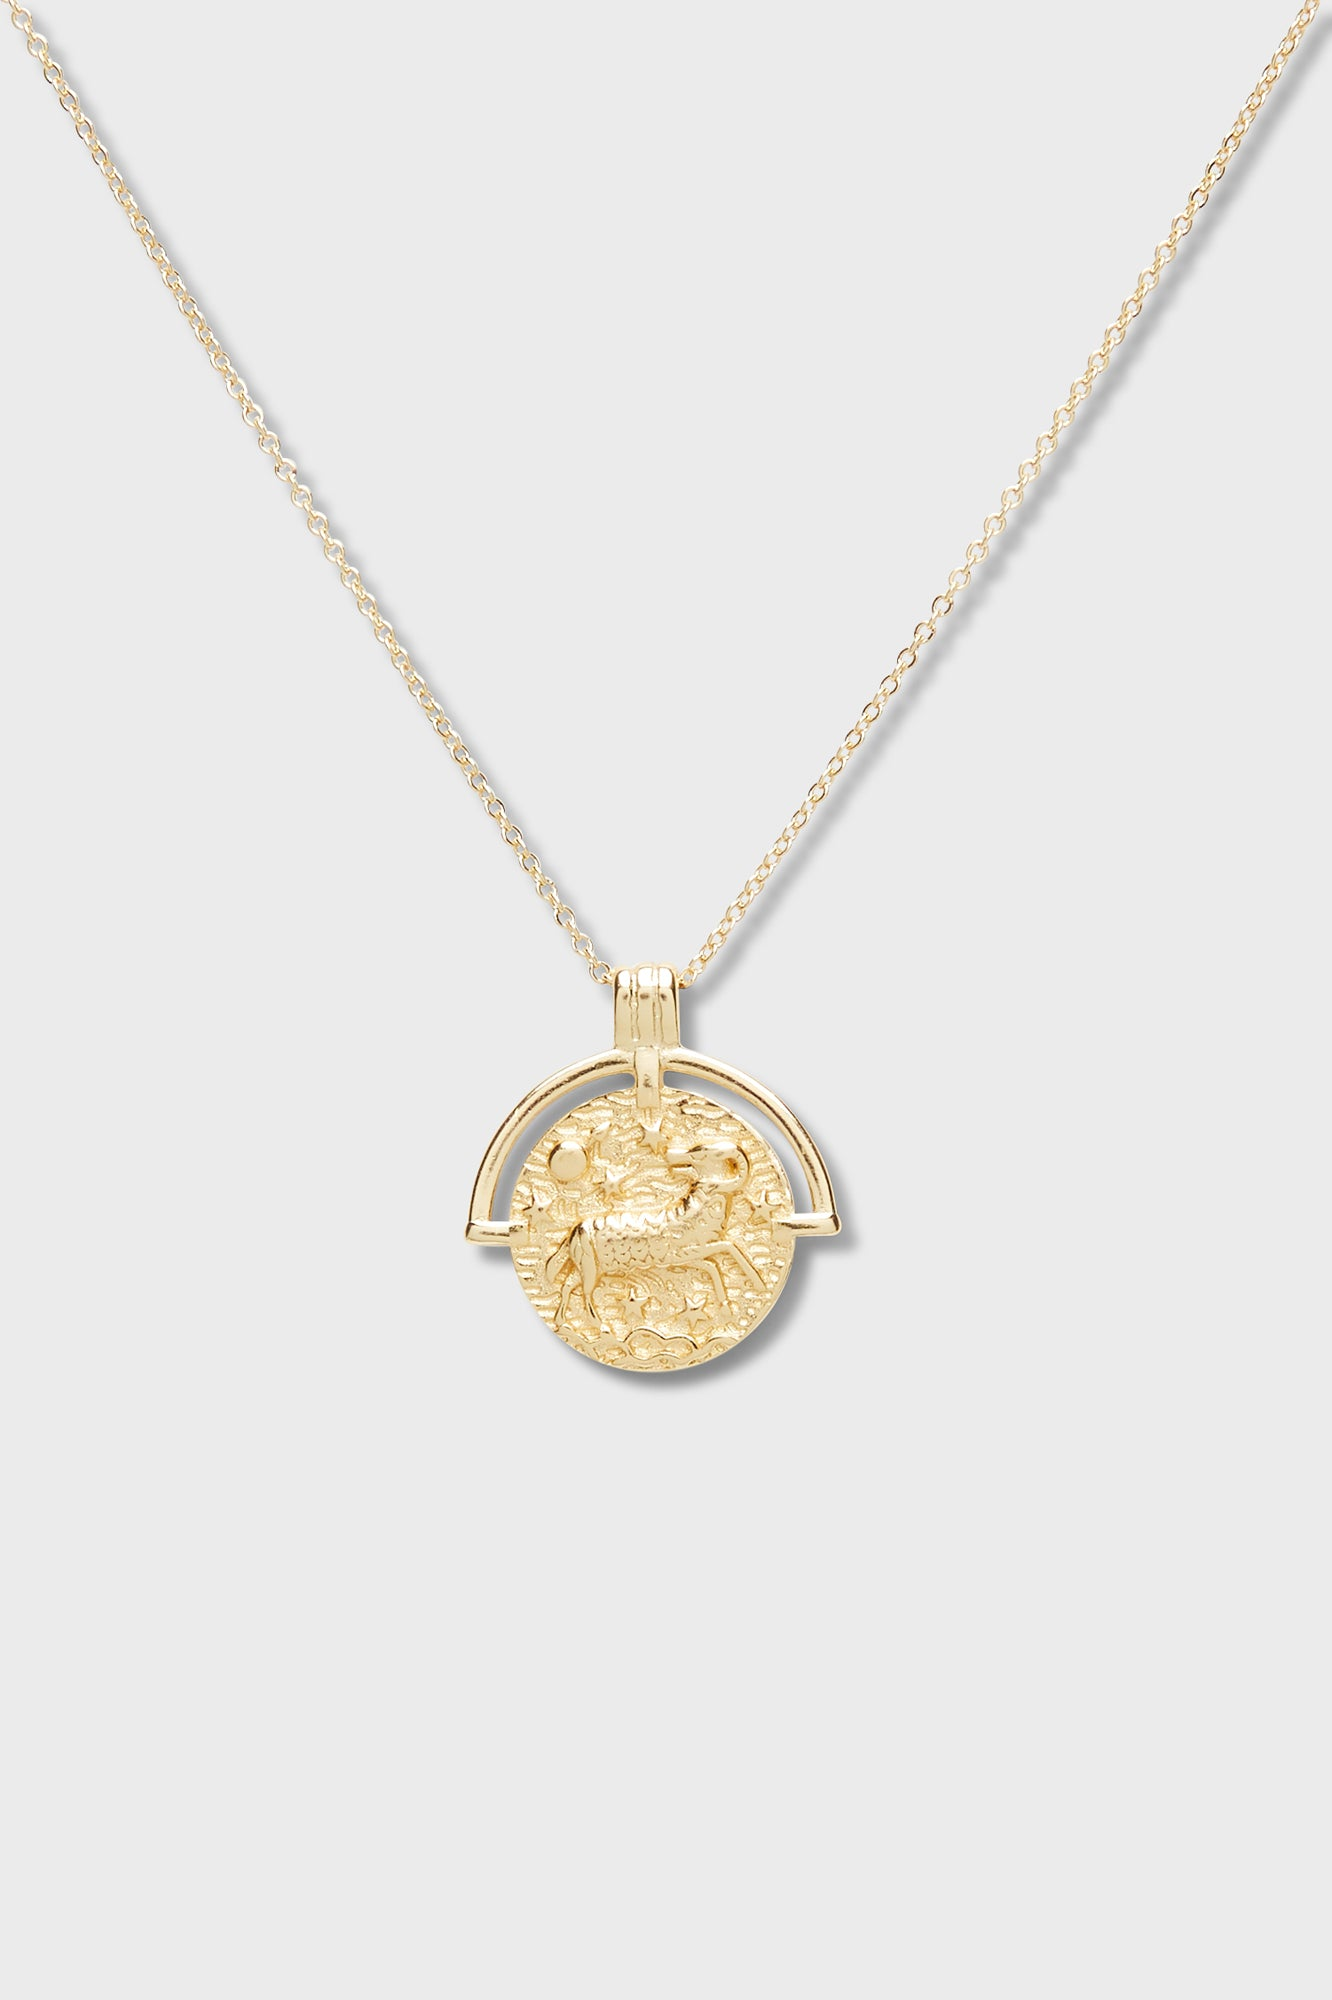 Astrology Necklace - Aries